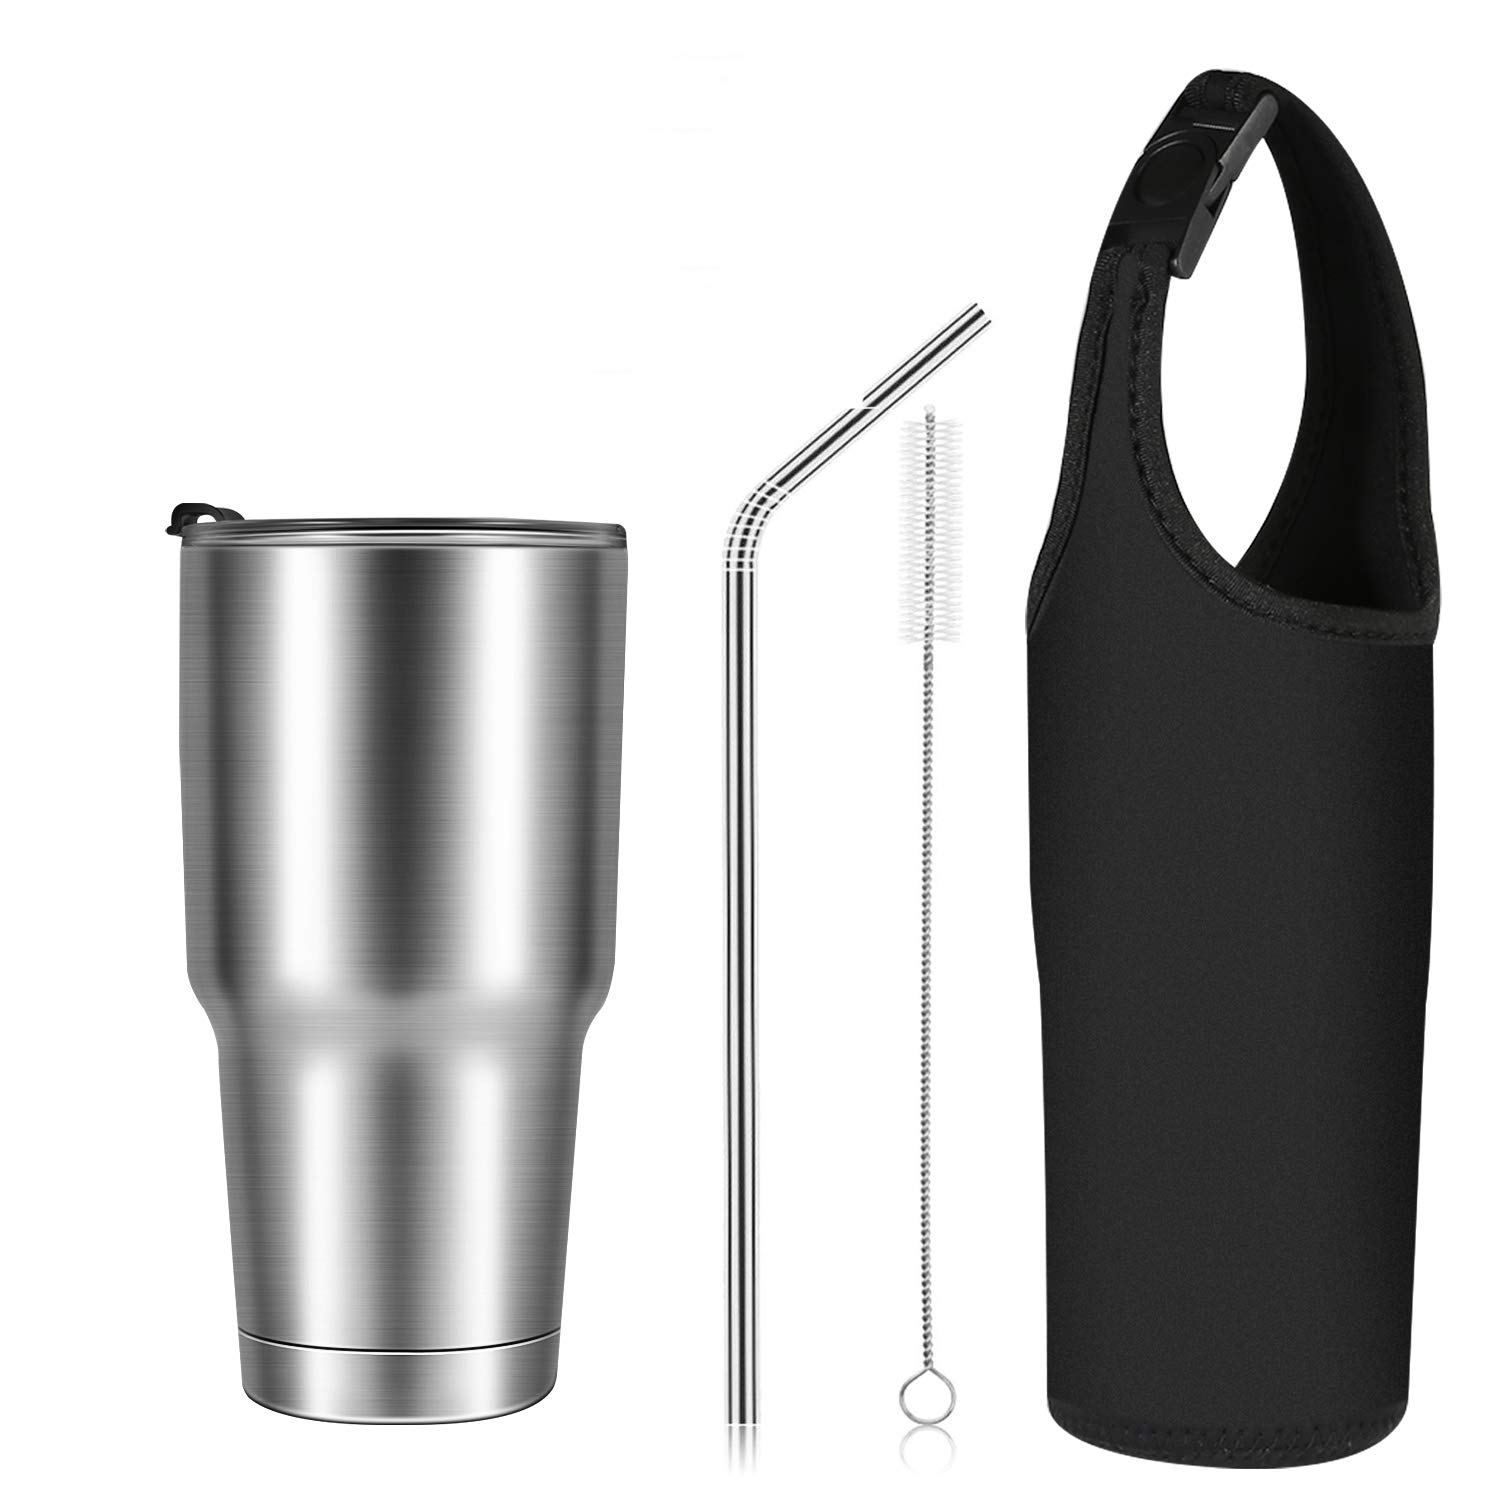 Stainless Steel Tumbler Double Wall Vacuum Insulated Rambler Large Water Bottle Coffee Cup Travel Mug for Ice Drink & Hot Beverage Flask for Home Office School 30 oz Mugs with Stainless Straws, Lid